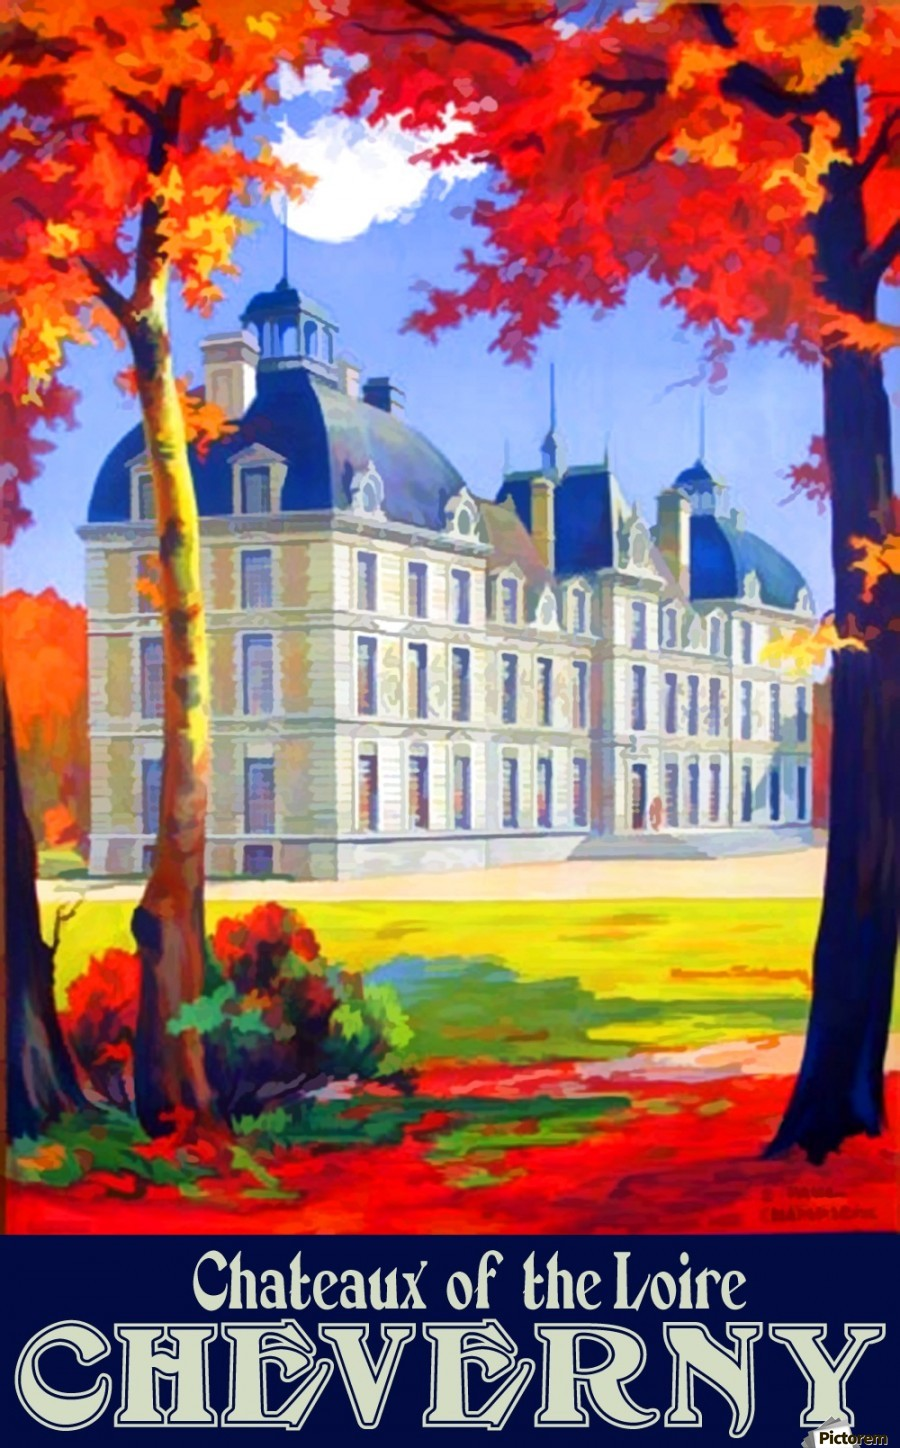 Chateaux of the Loire Cheverny travel poster  Print